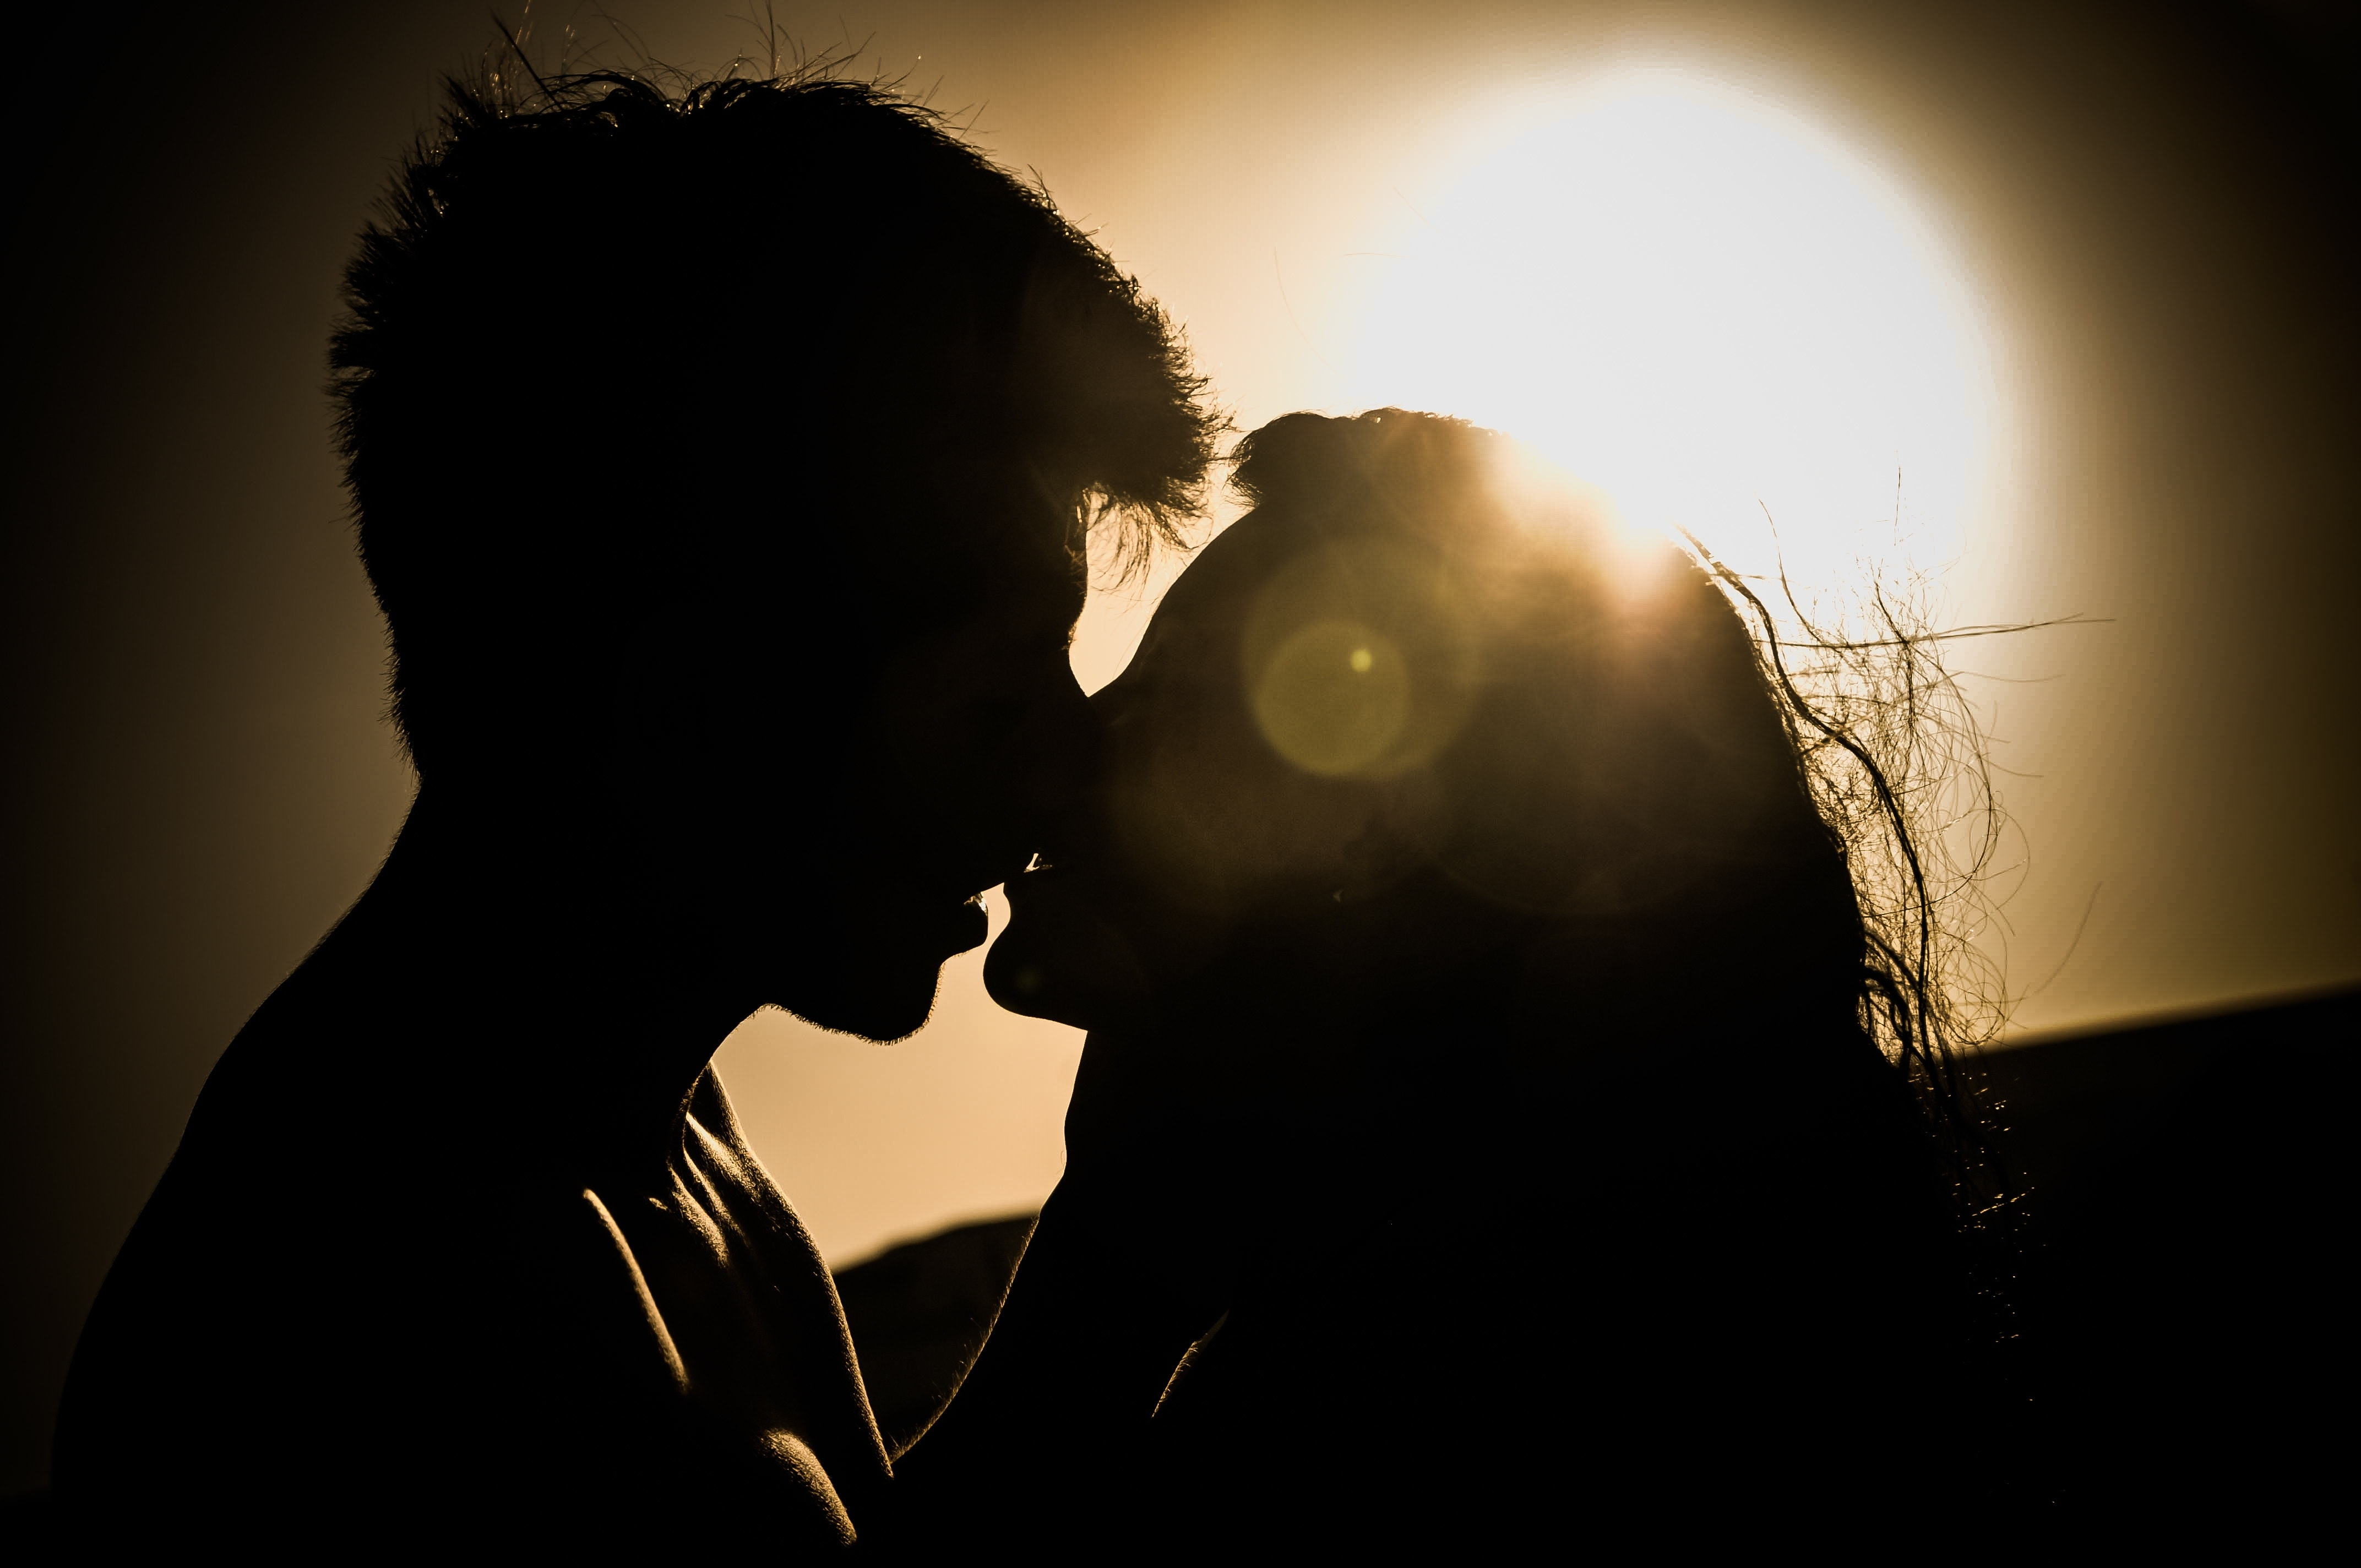 Silhouettes of Couple Kissing Against Sunset, Affection, Lovers, Sunset, Sunrise, HQ Photo